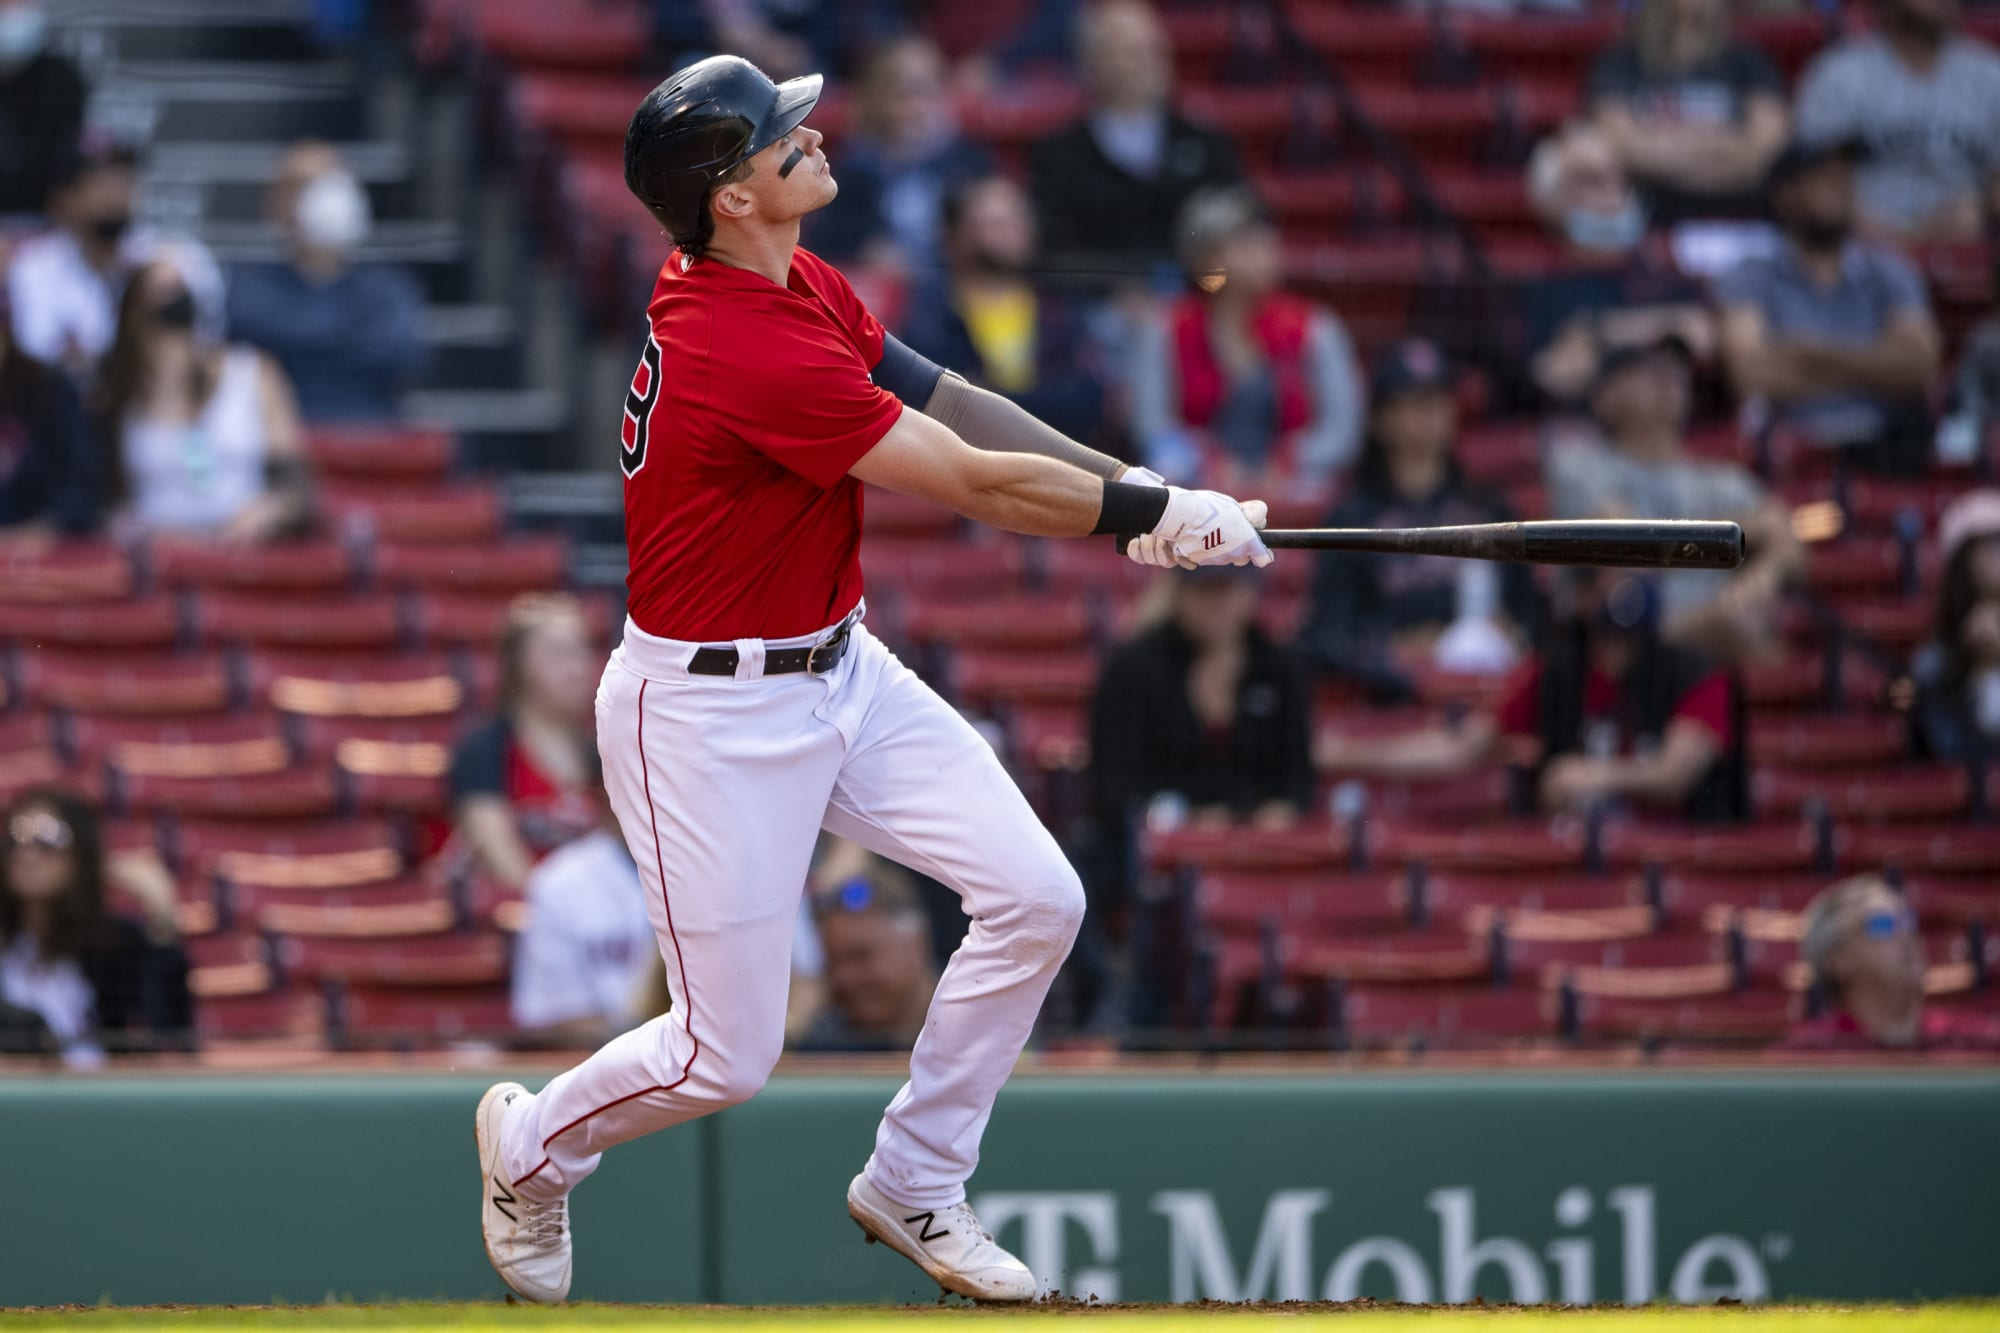 Boston Red Sox: Bottom of Sox lineup is starting to erupt